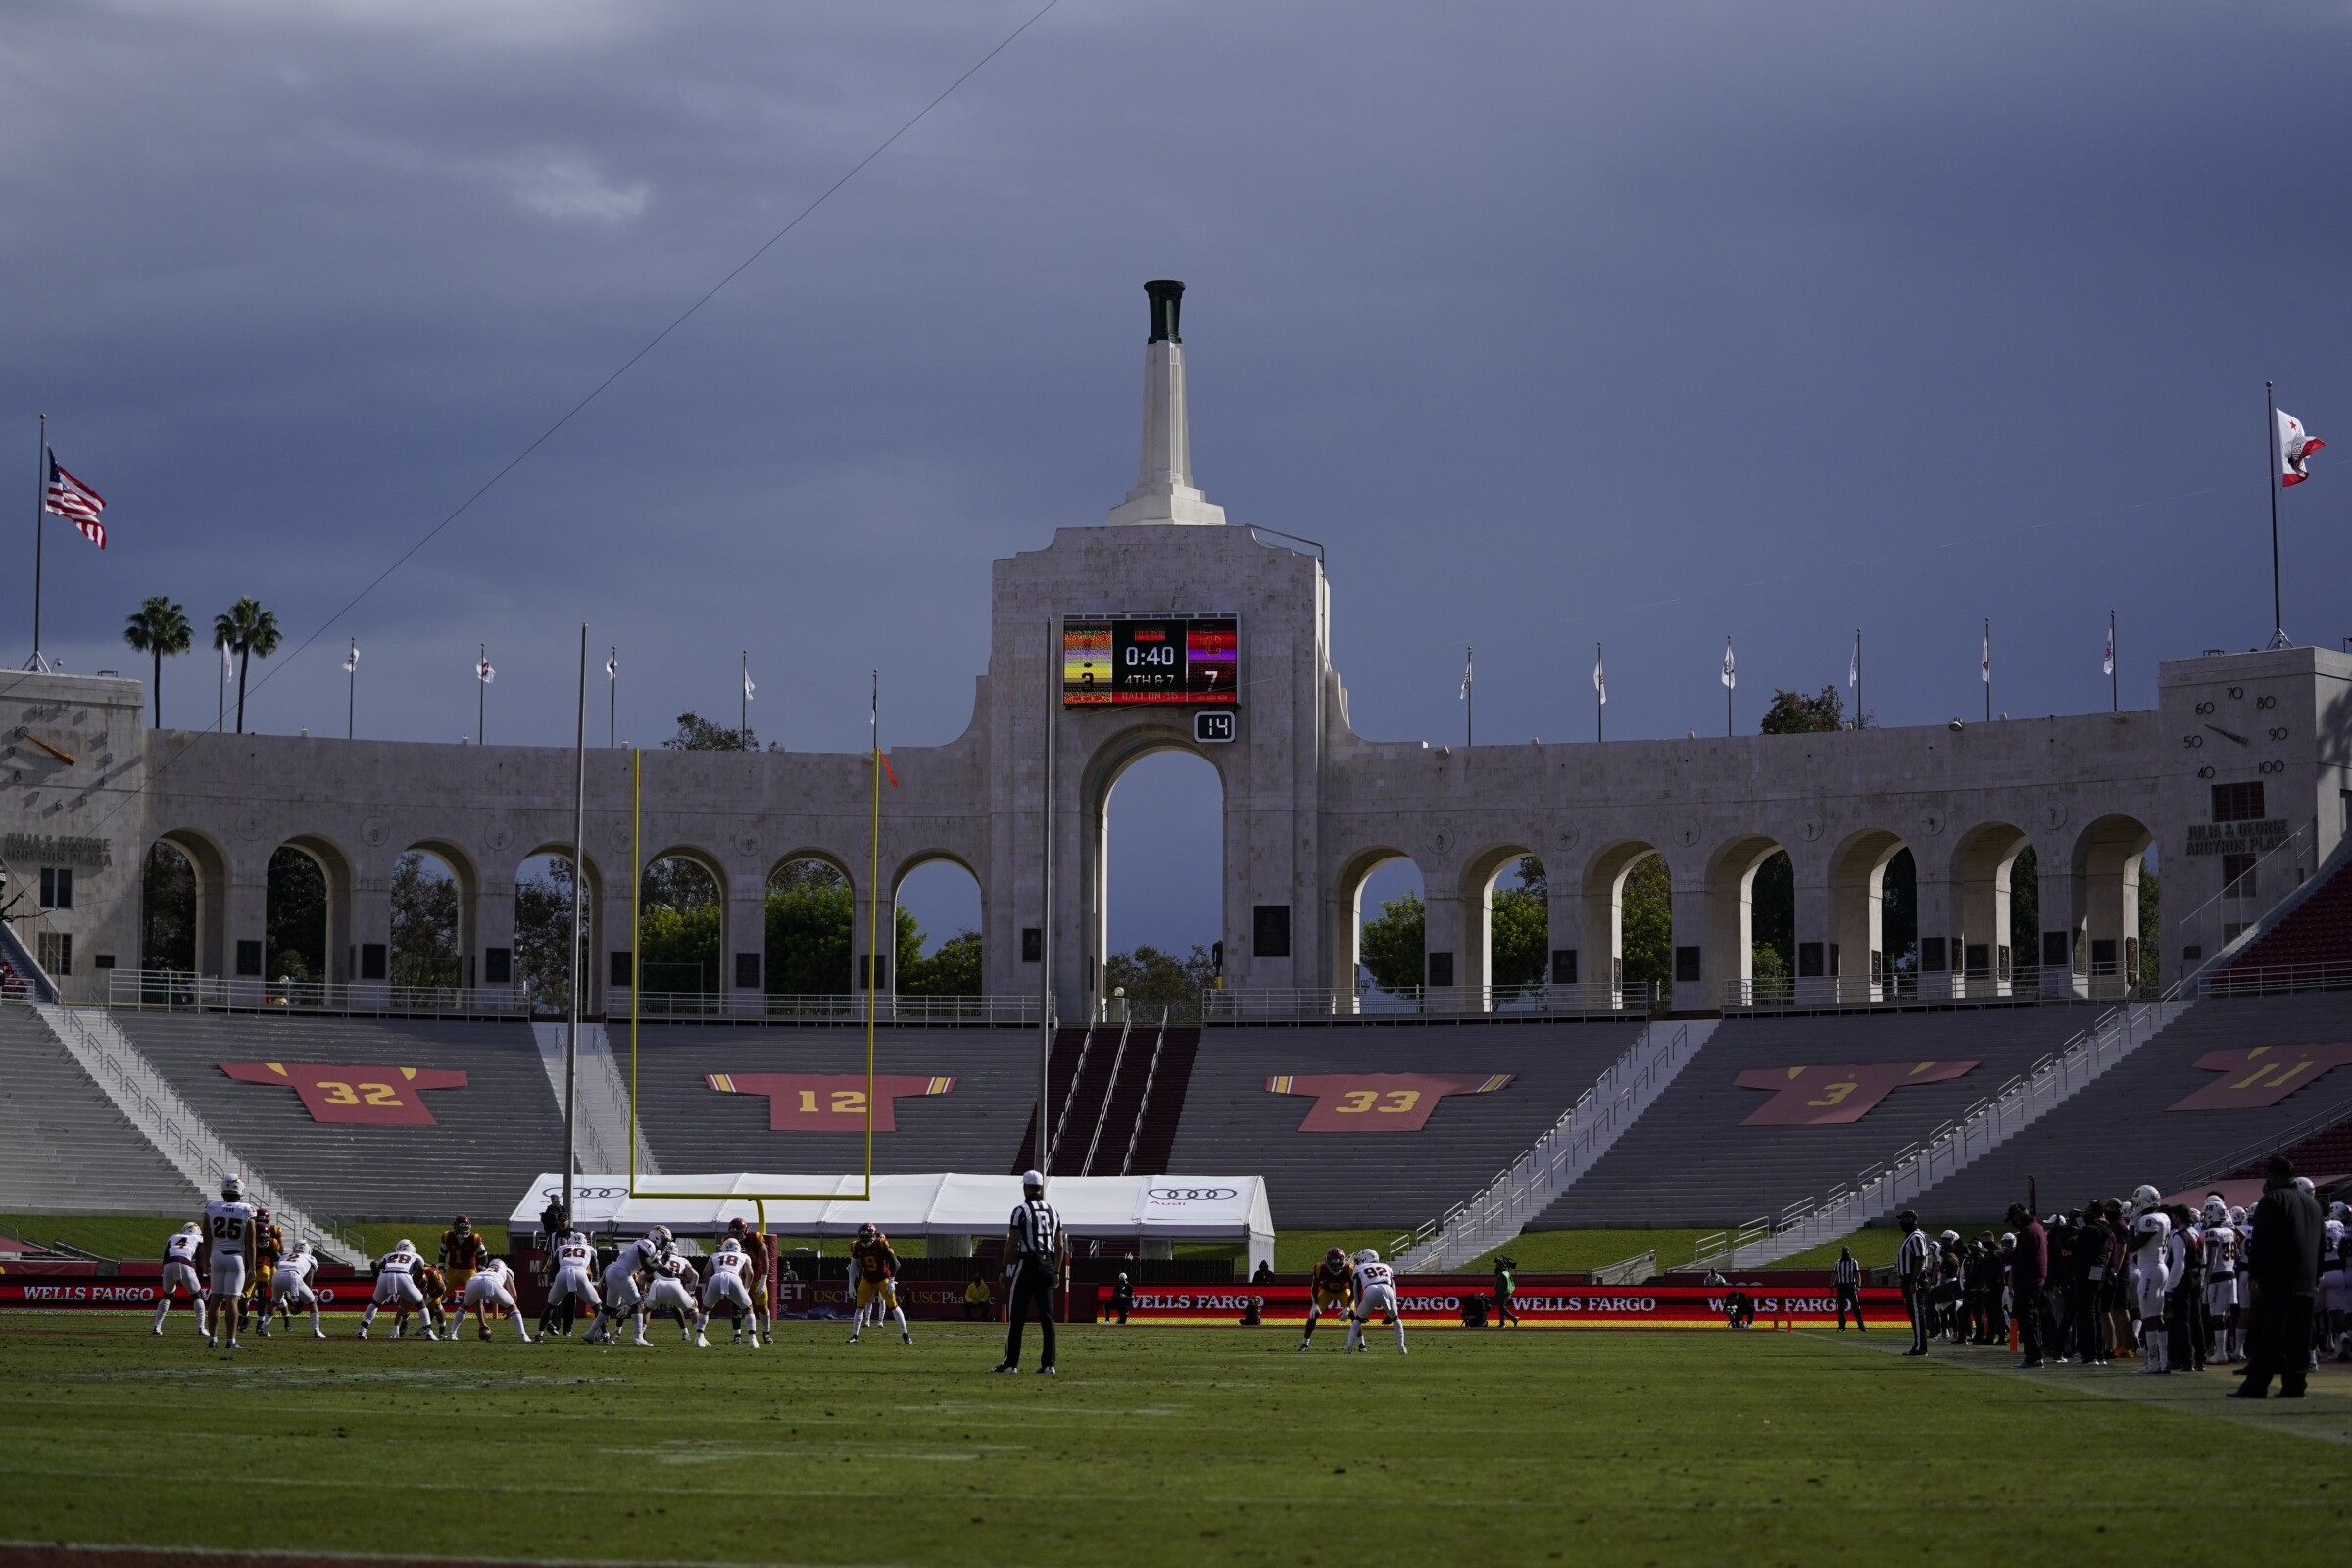 The Coliseum on Nov. 7, during the first half between USC and Arizona State.